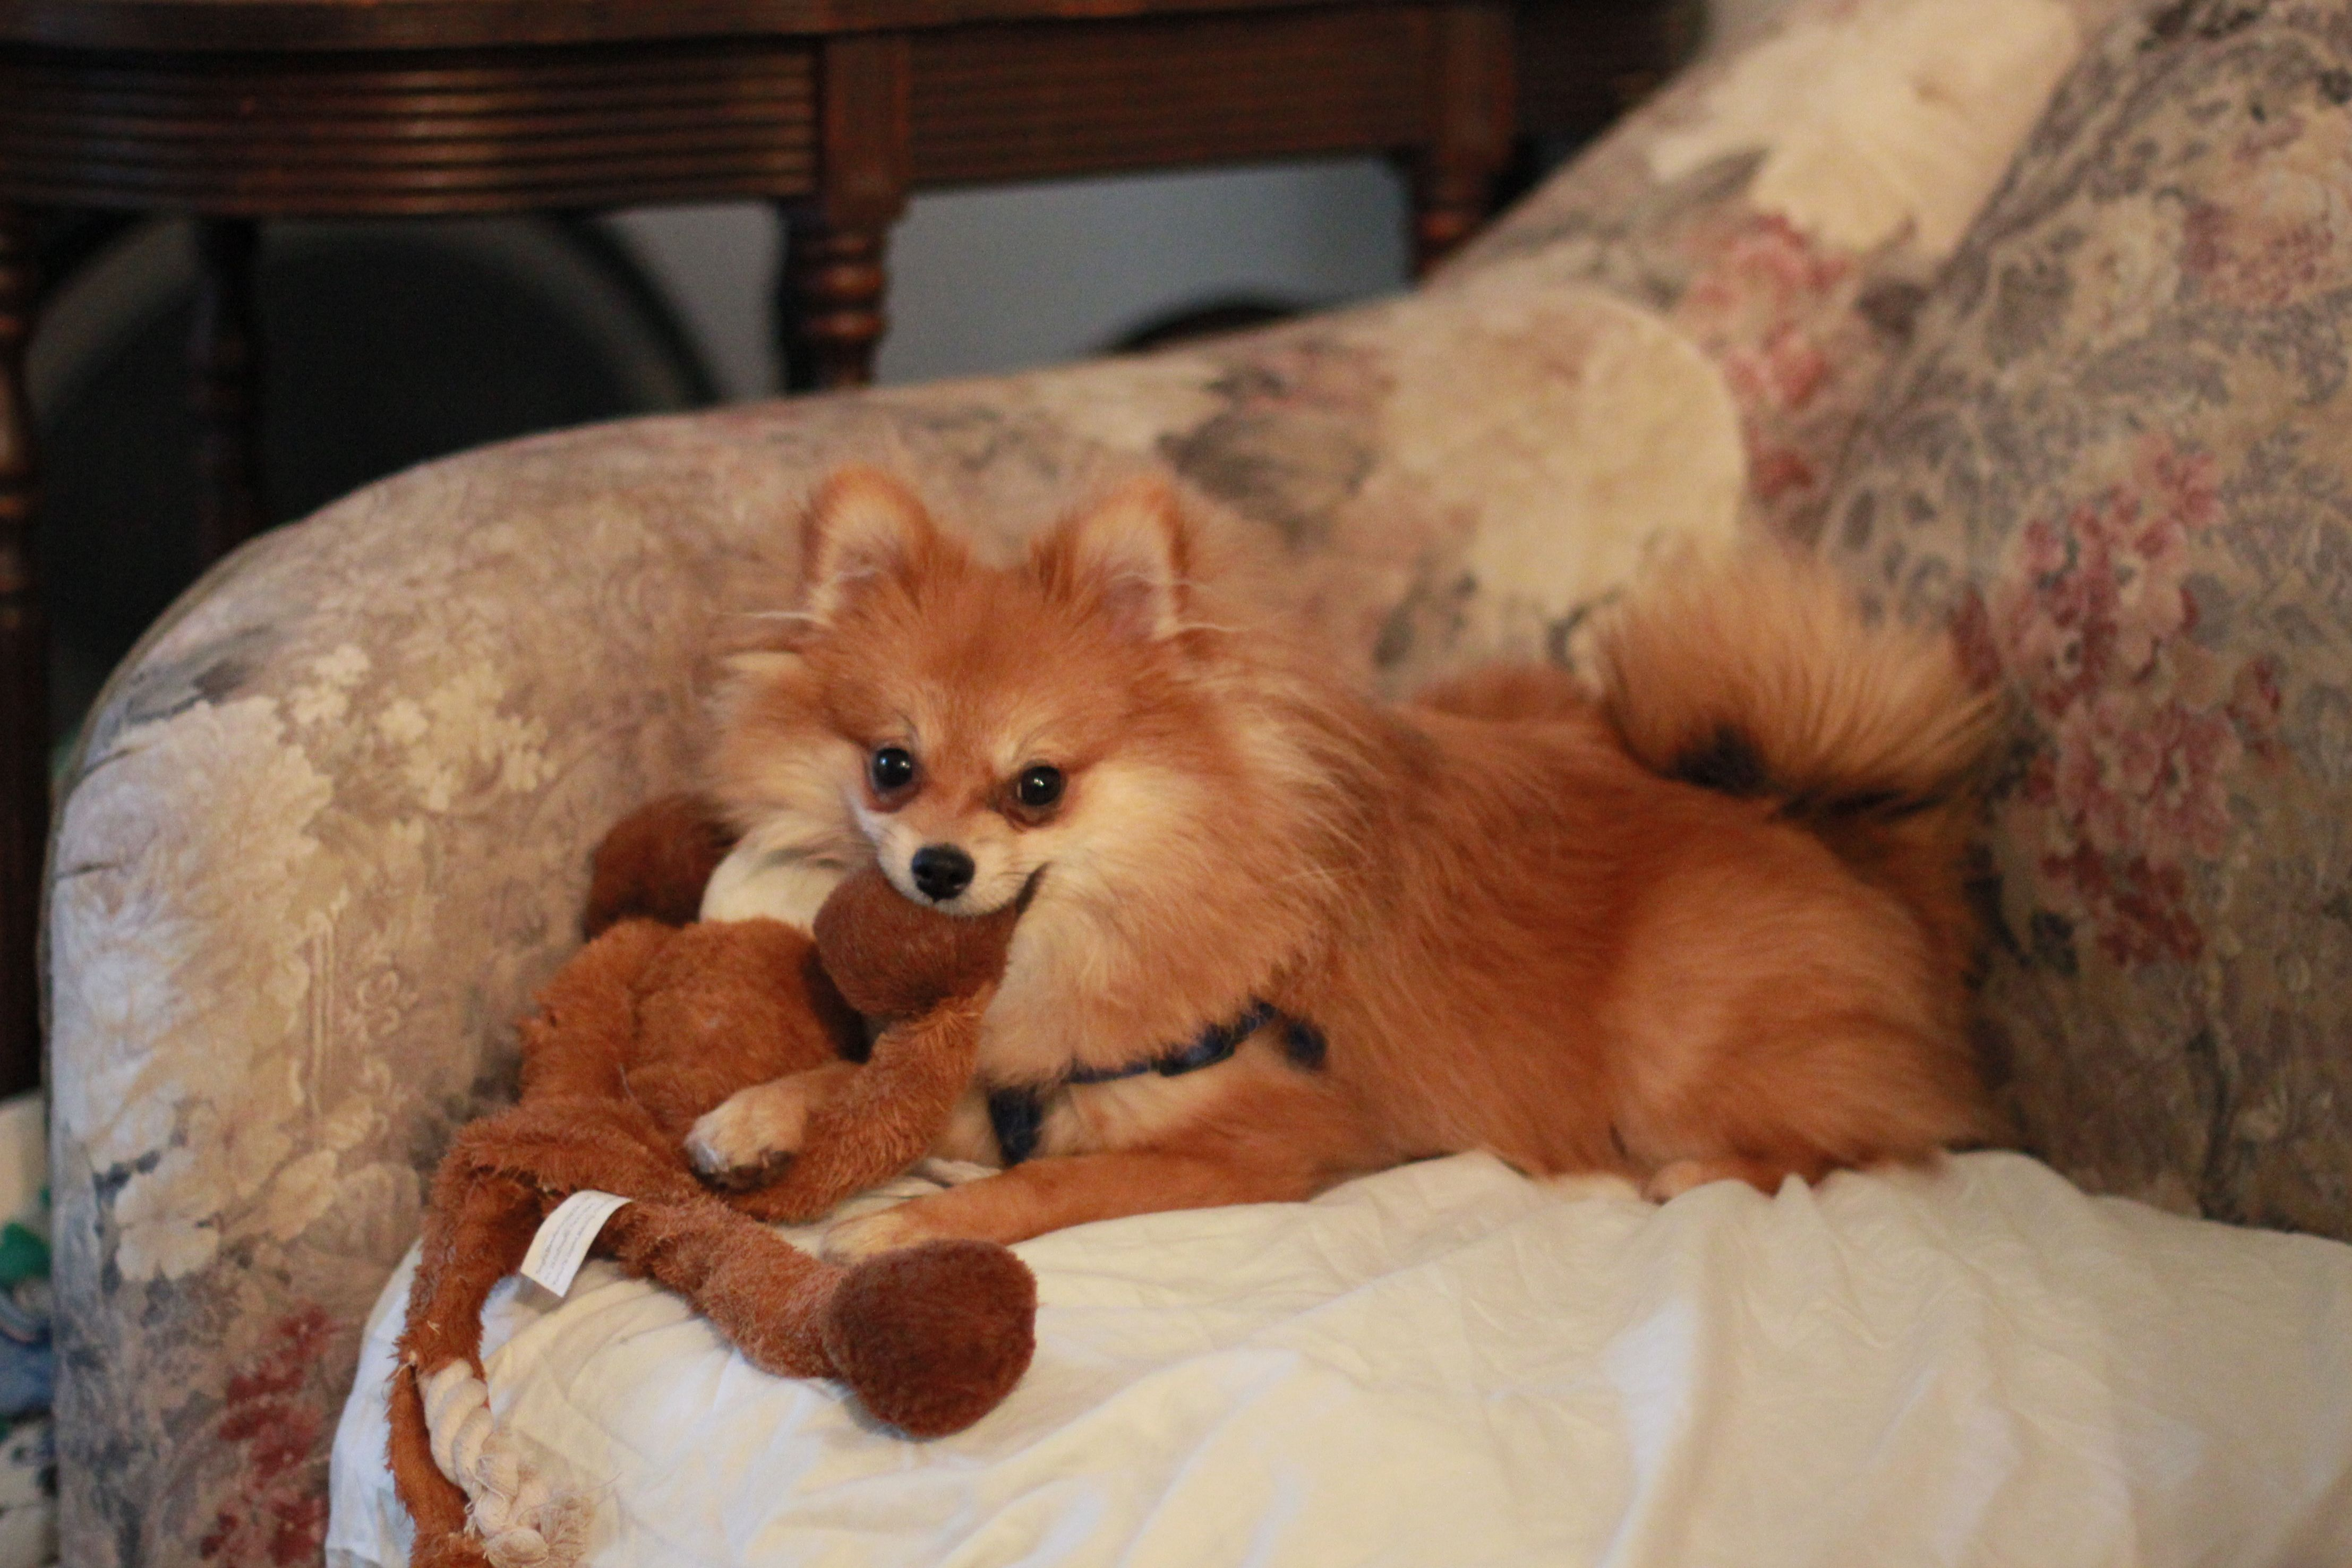 Meet Jiggly Puff. He's a 7 month old pomeranian. His puppy